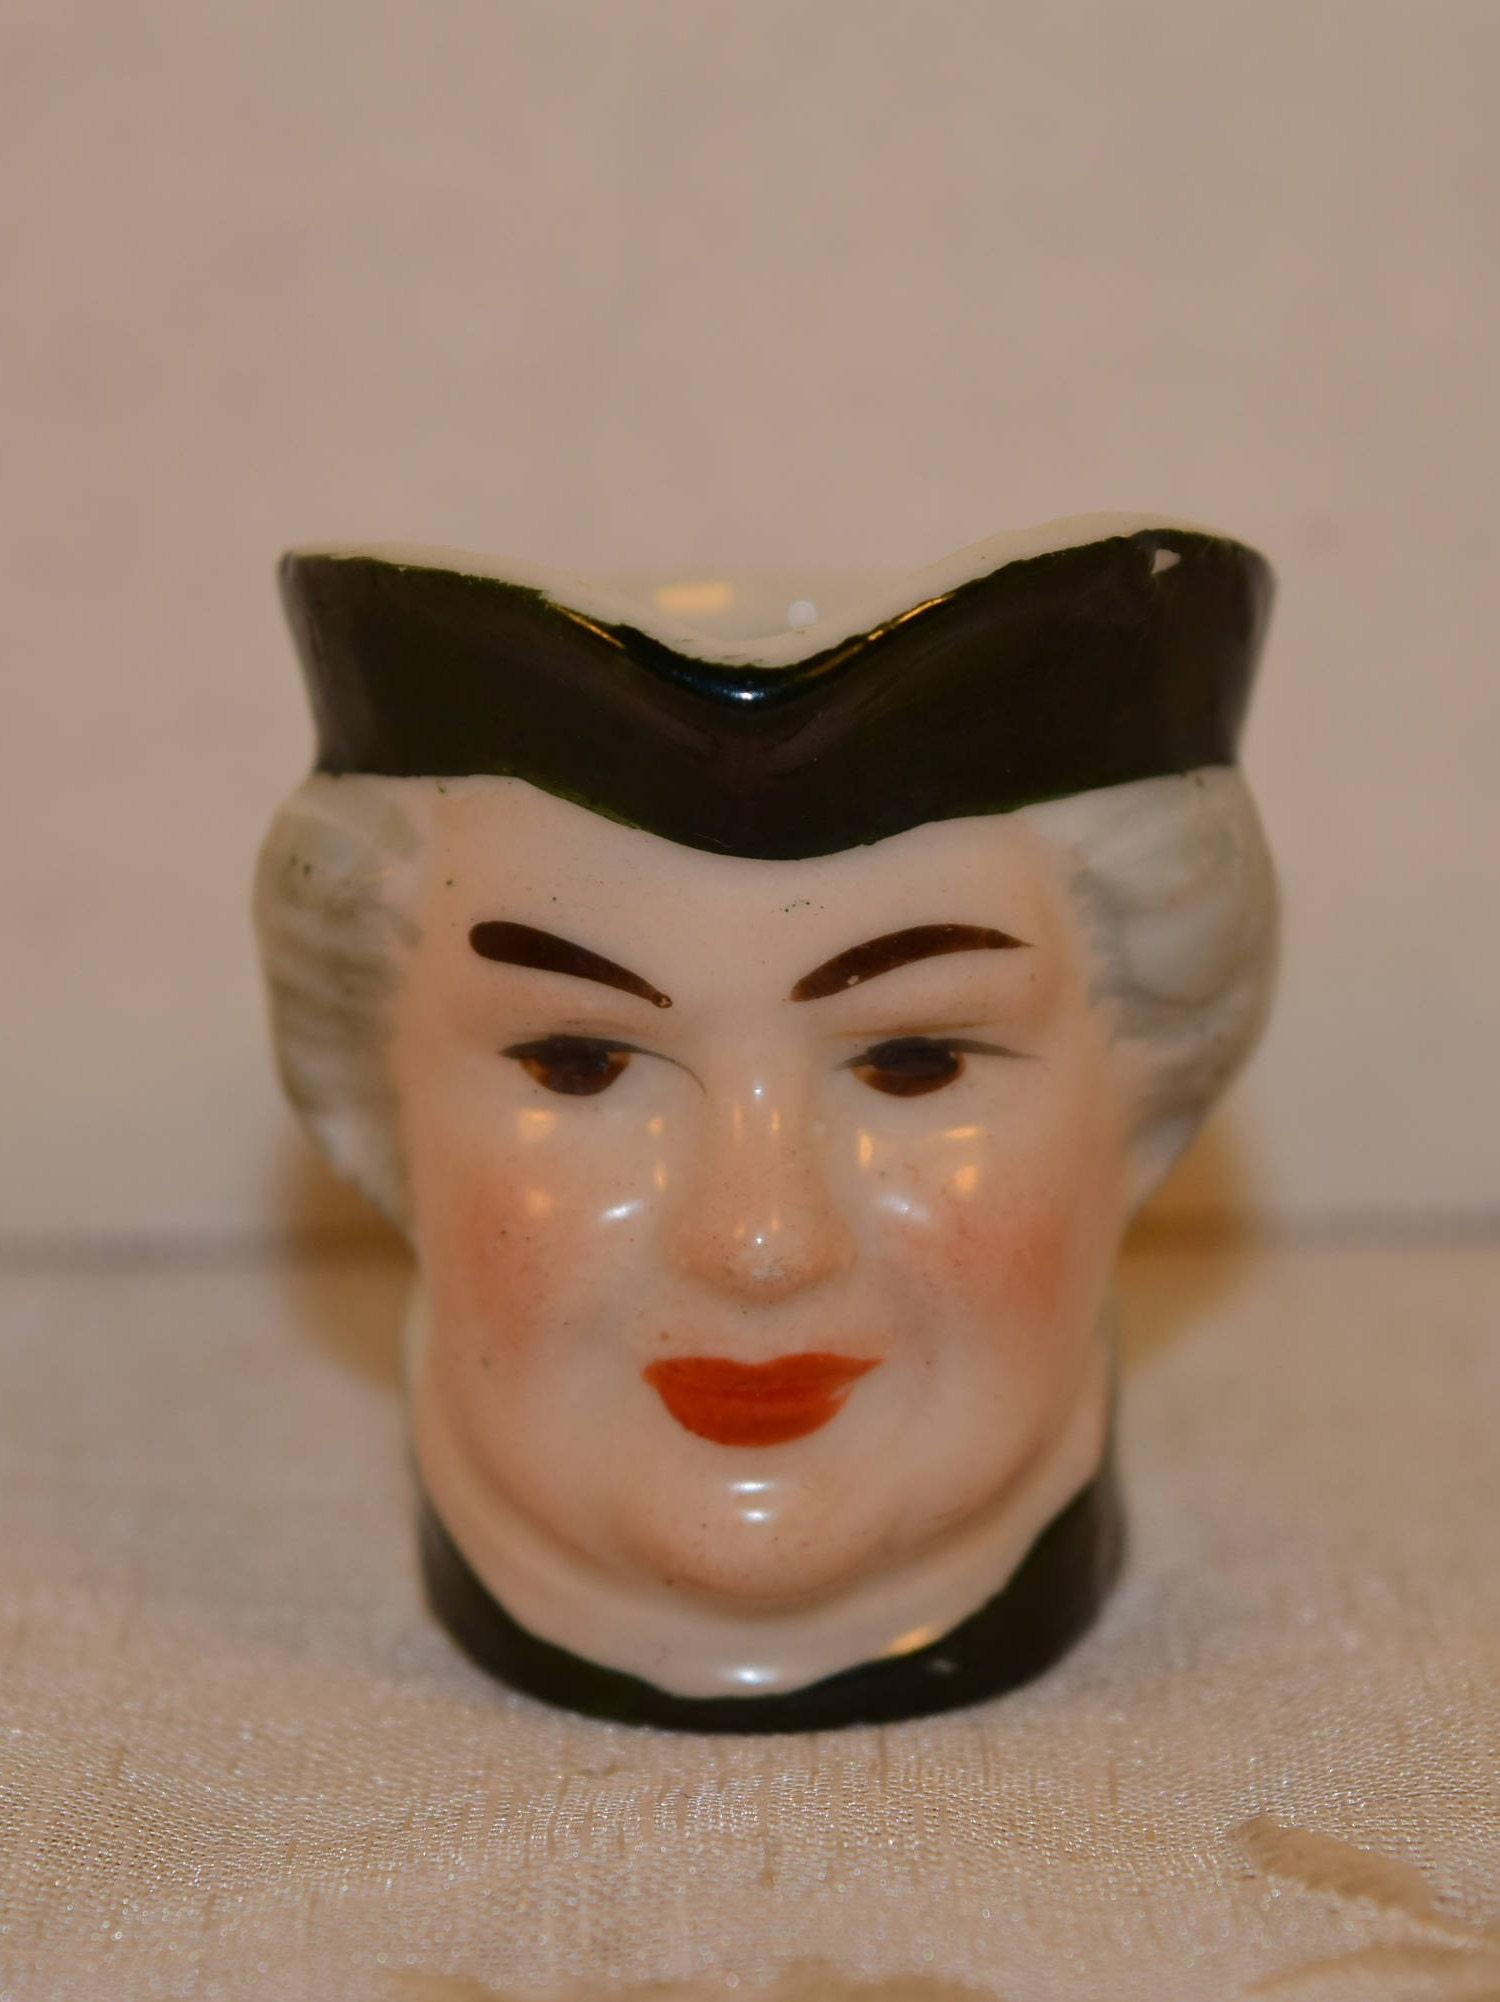 Miniature Toby Pitcher Vintage Colonial Man Head Jug Made In Japan Tiny Toby Character Mug Colonial Face Pitcher Toby Collectible